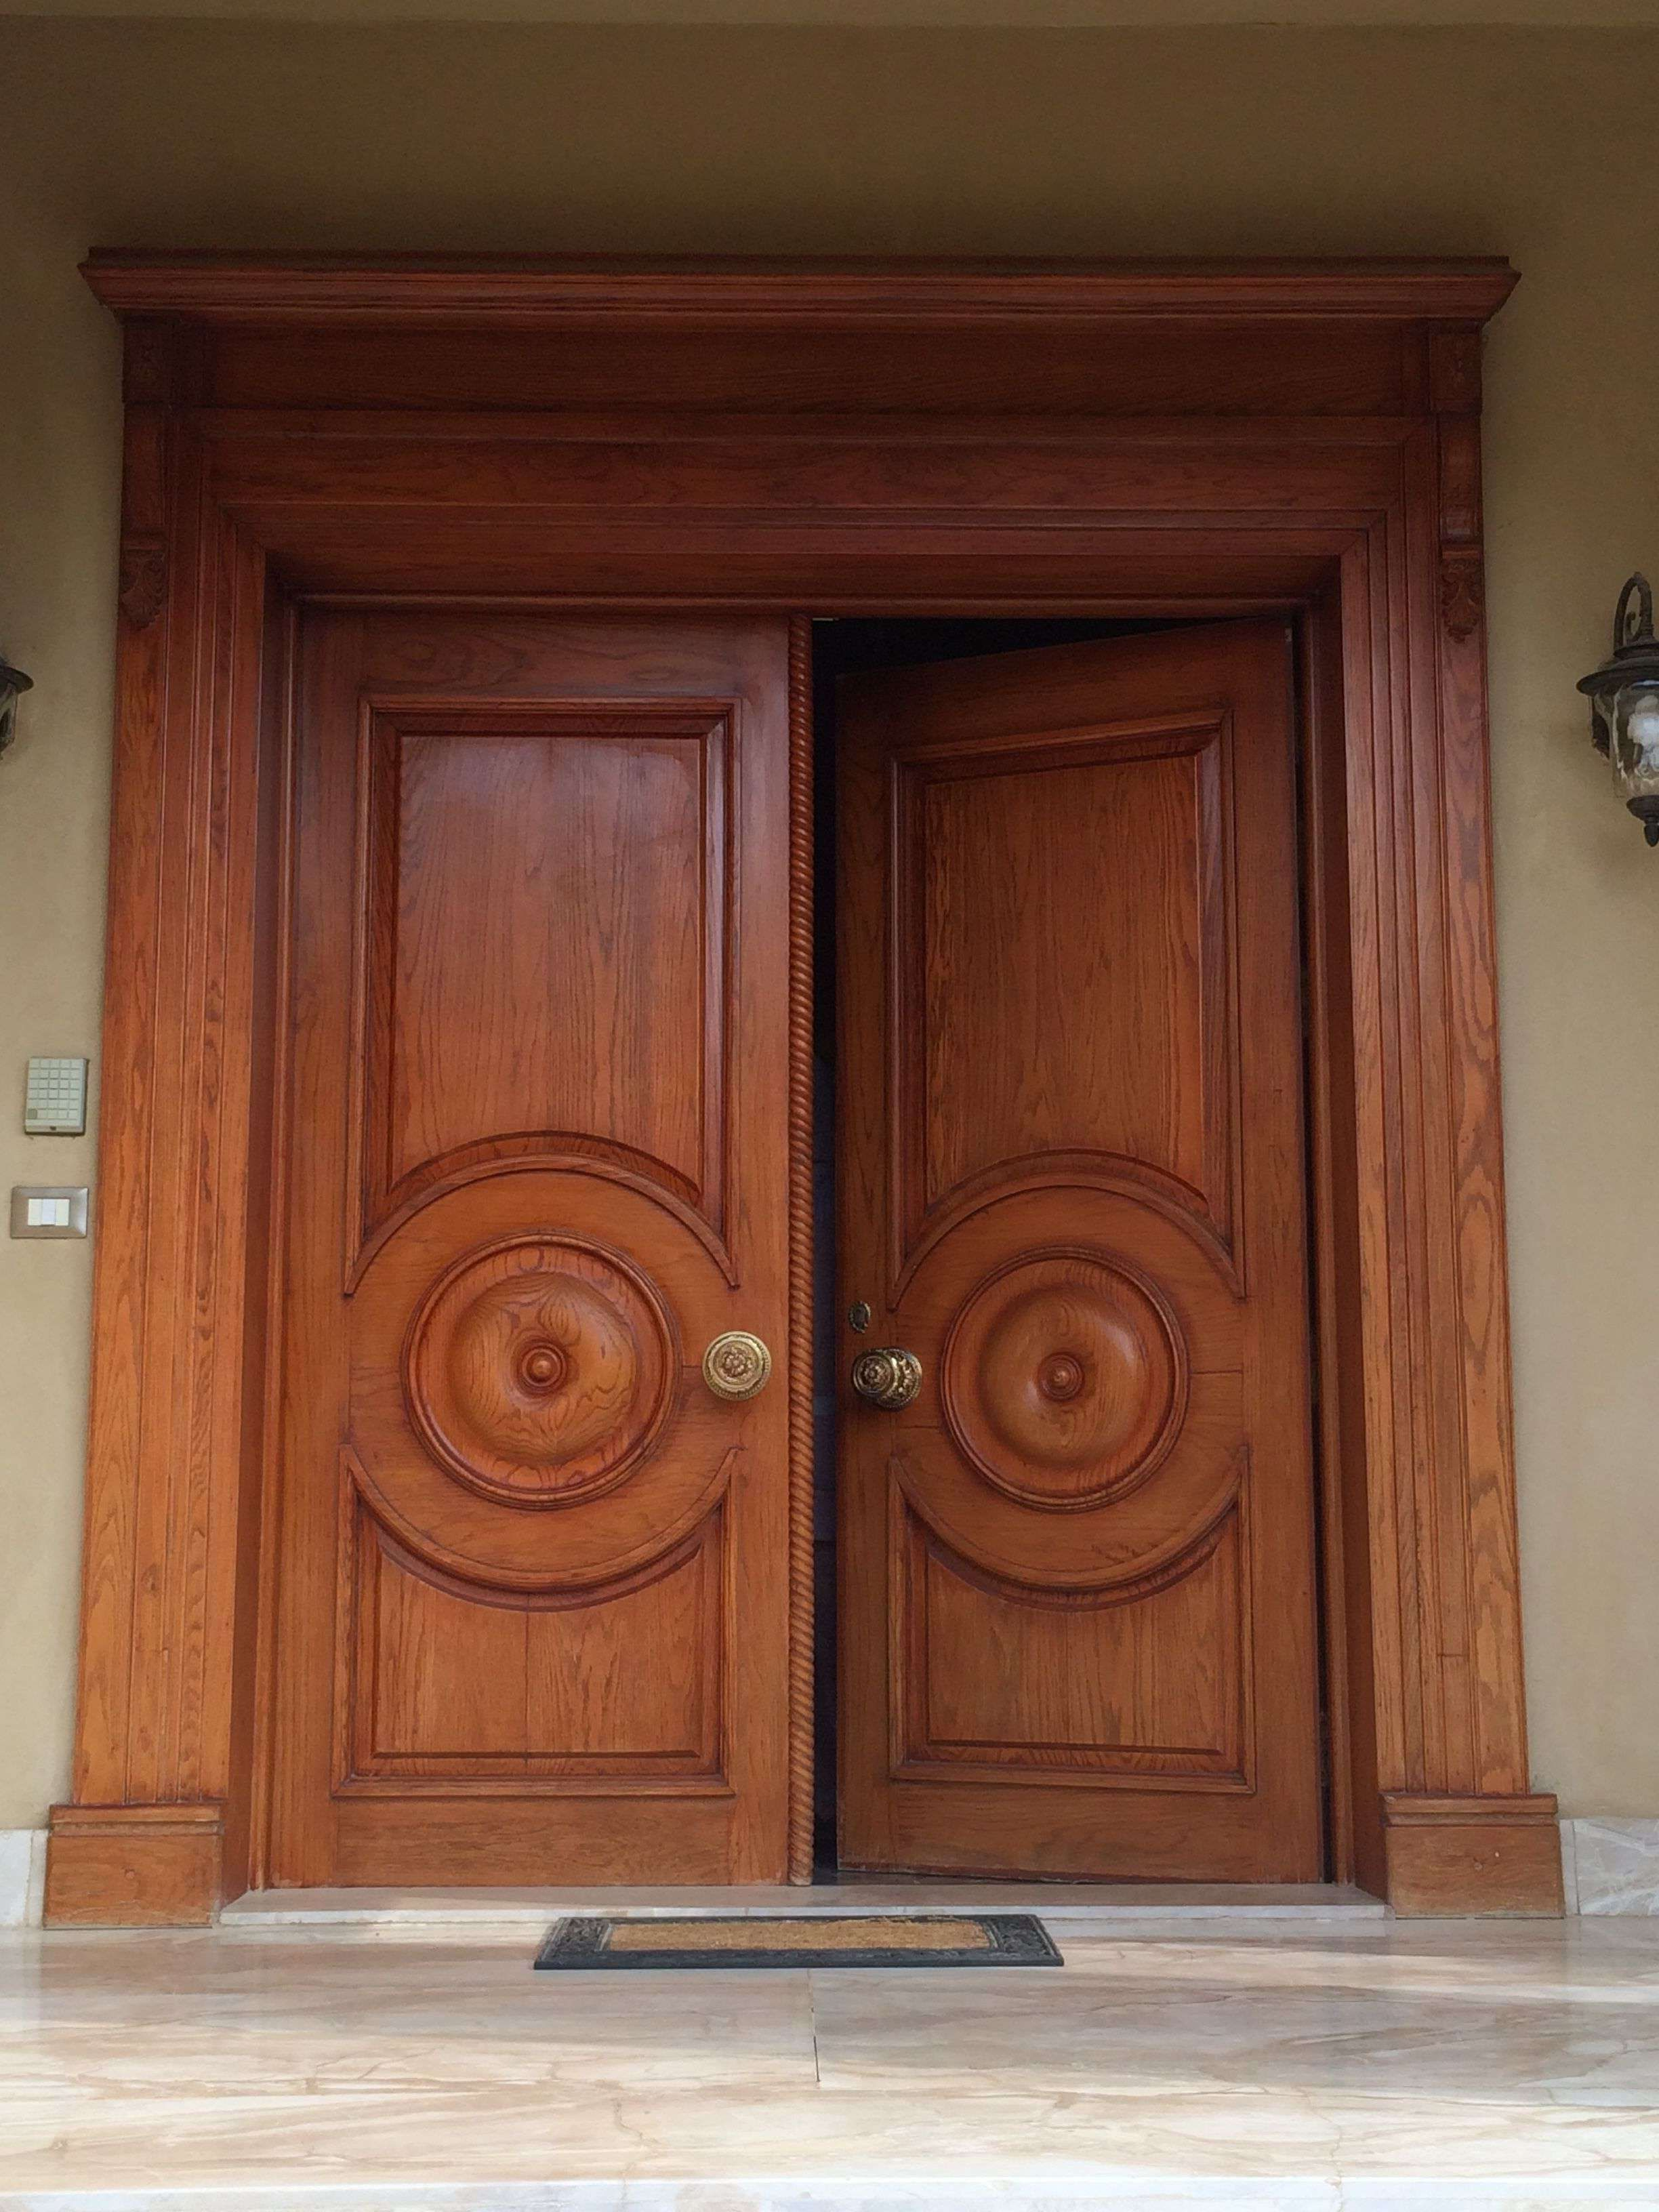 Front Door Ideas Let People Into Your Home Beautifully Decor Around The World Door Design Wood Front Doors Wooden Front Doors